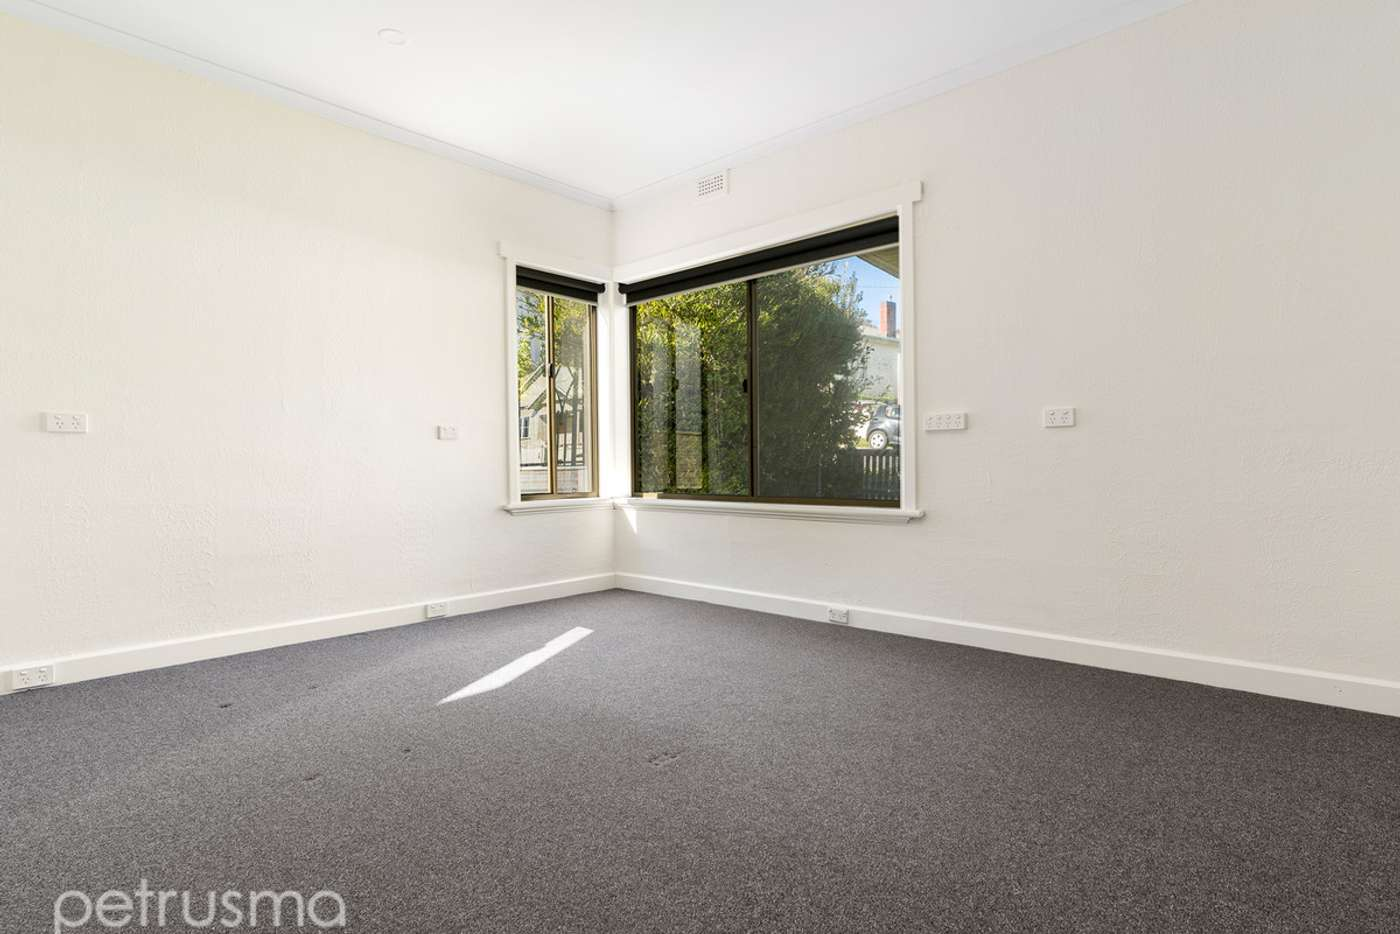 Fifth view of Homely house listing, 17 Cressy Street, New Town TAS 7008